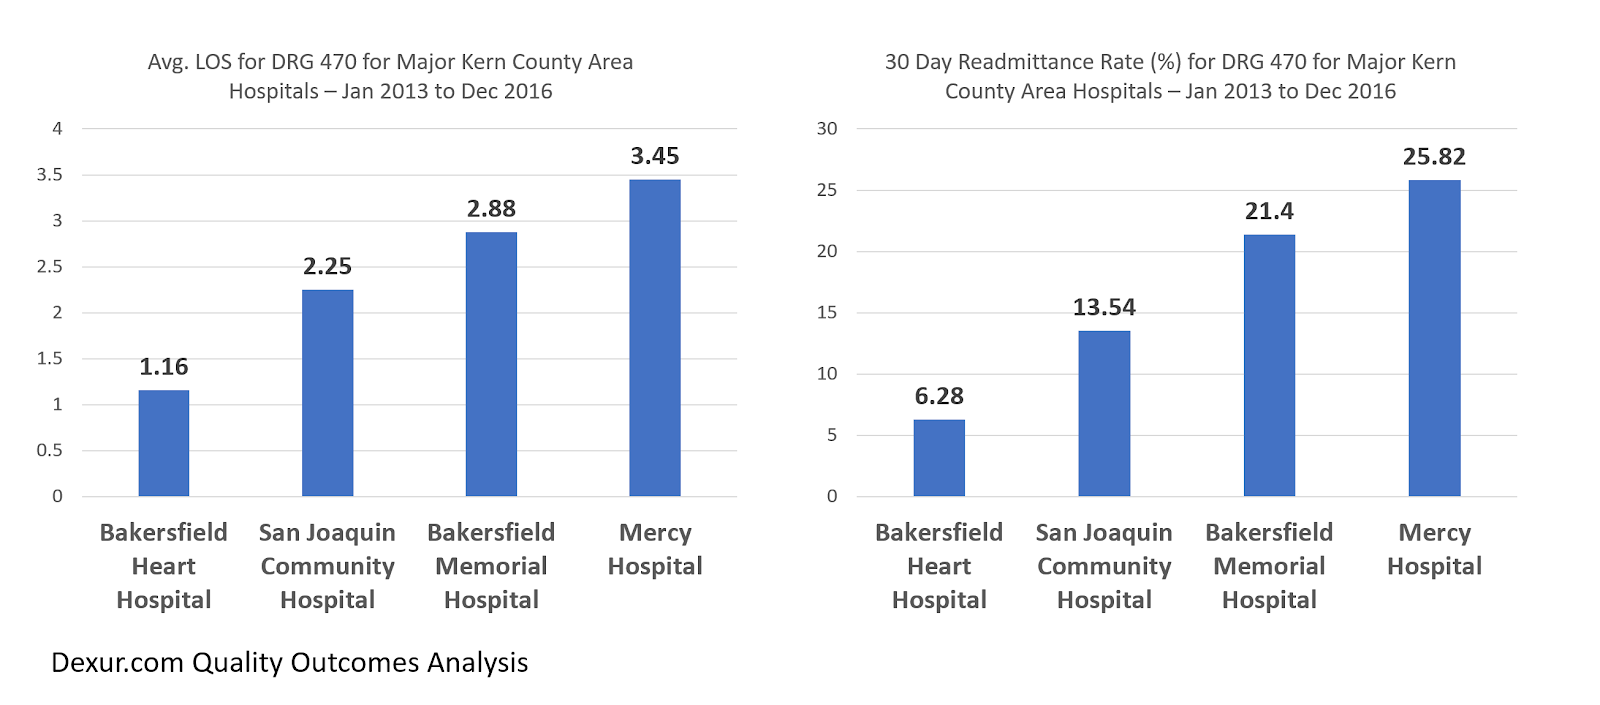 Avg LOS for DRG 470 for Major Kern County Hospitals